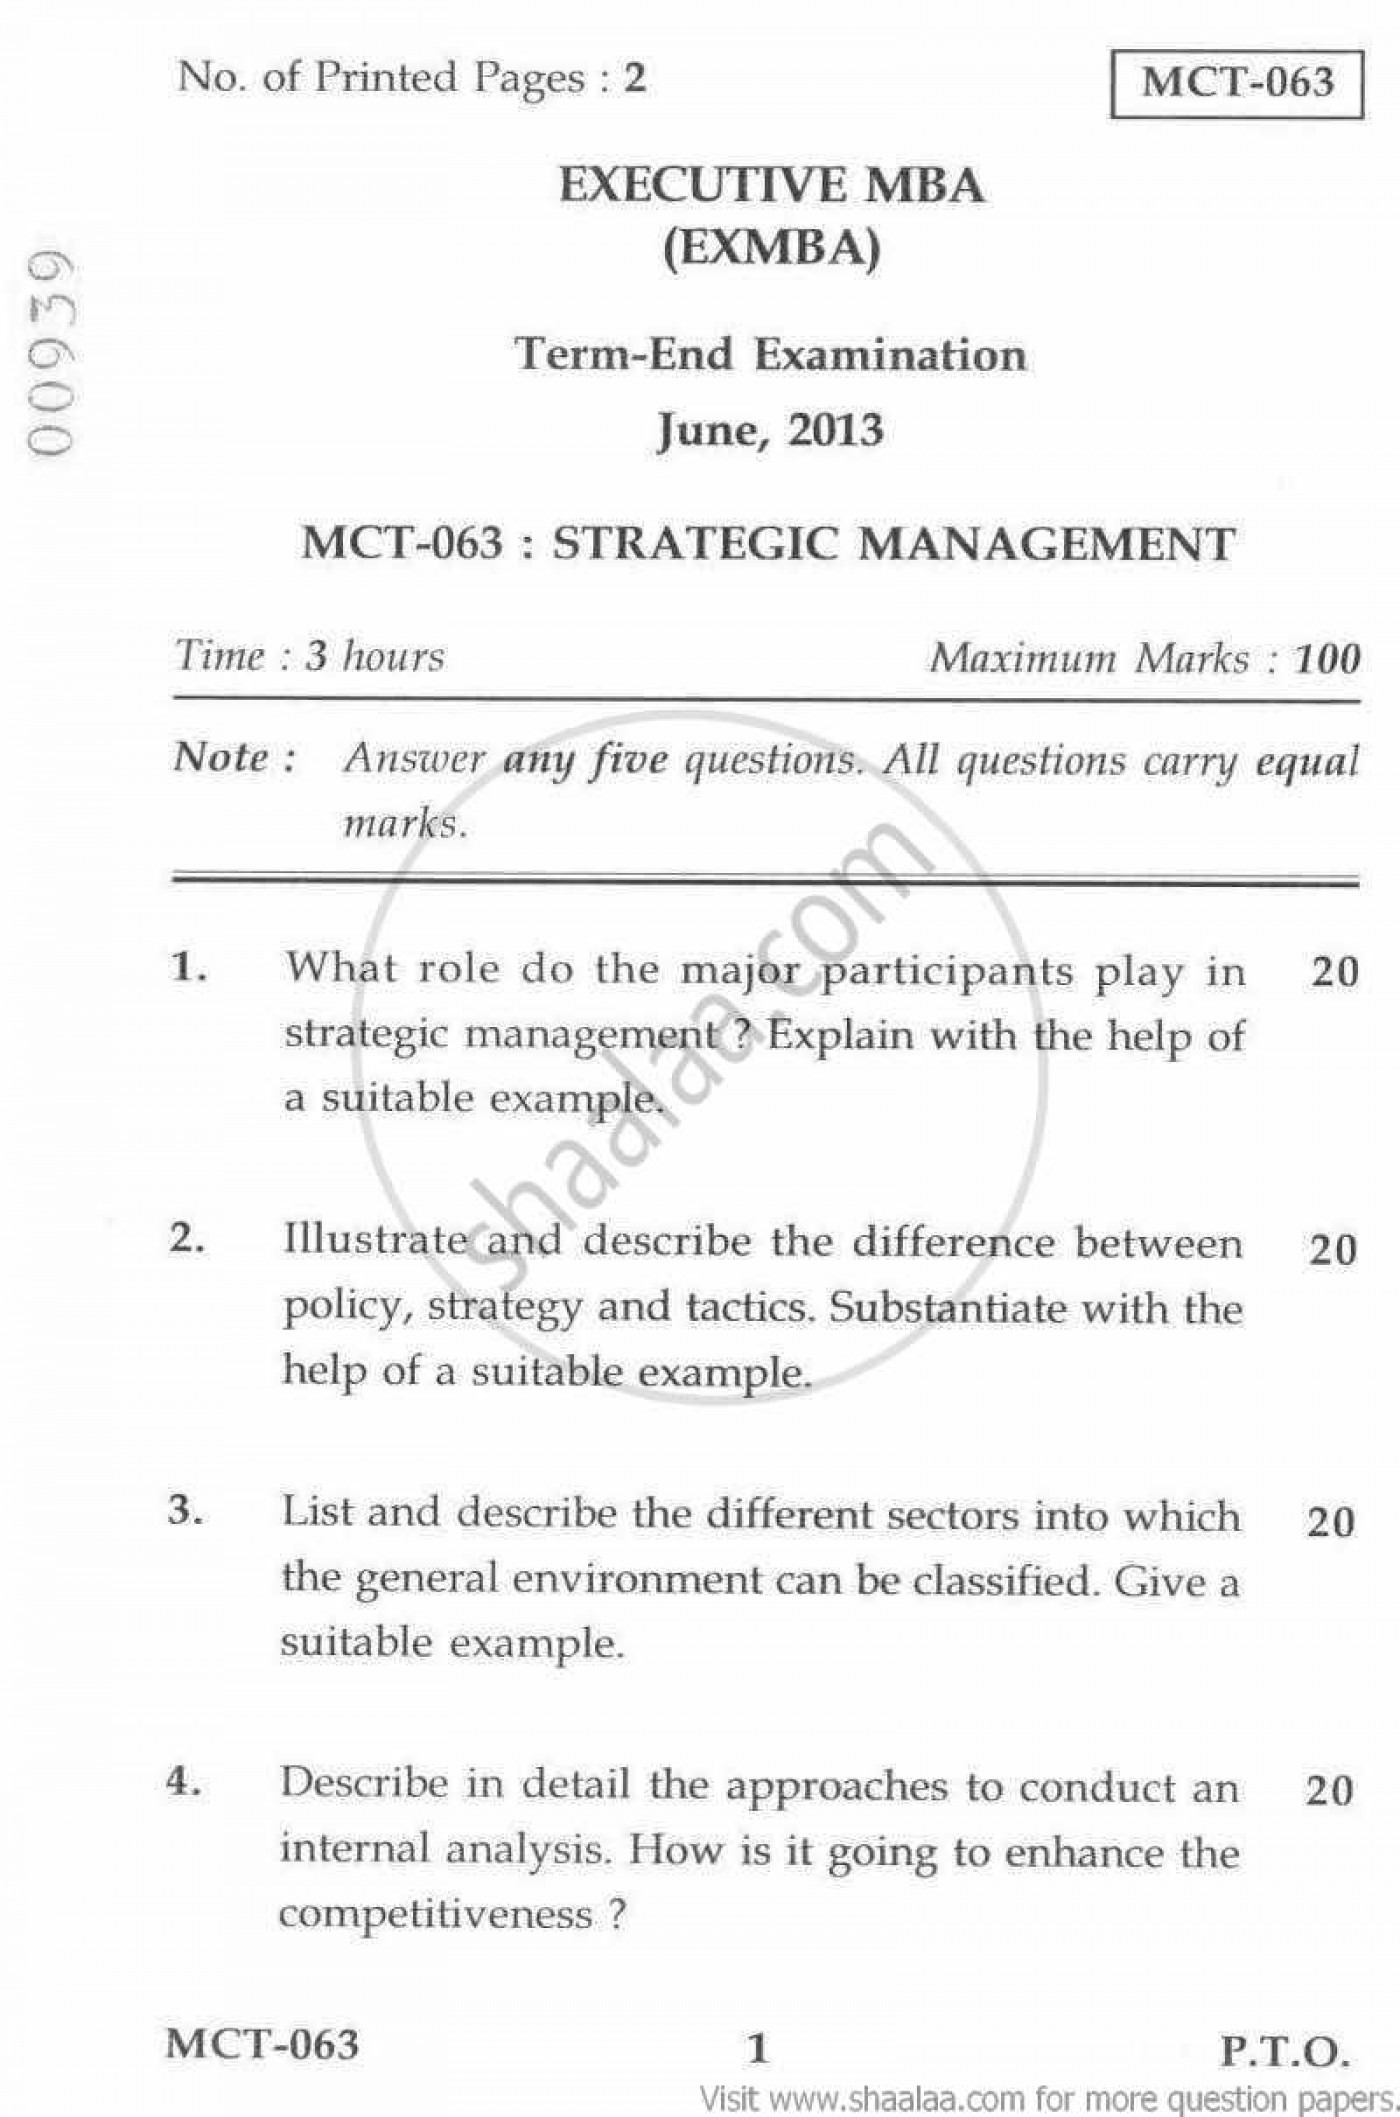 005 Essay Example Role Model Writing For Speech Spm Strategic Management Hamburger Of In Malayalam Pdf Continuous Ielts O Awesome My Father A English Is Parents Hindi Conclusion Paragraph 1400